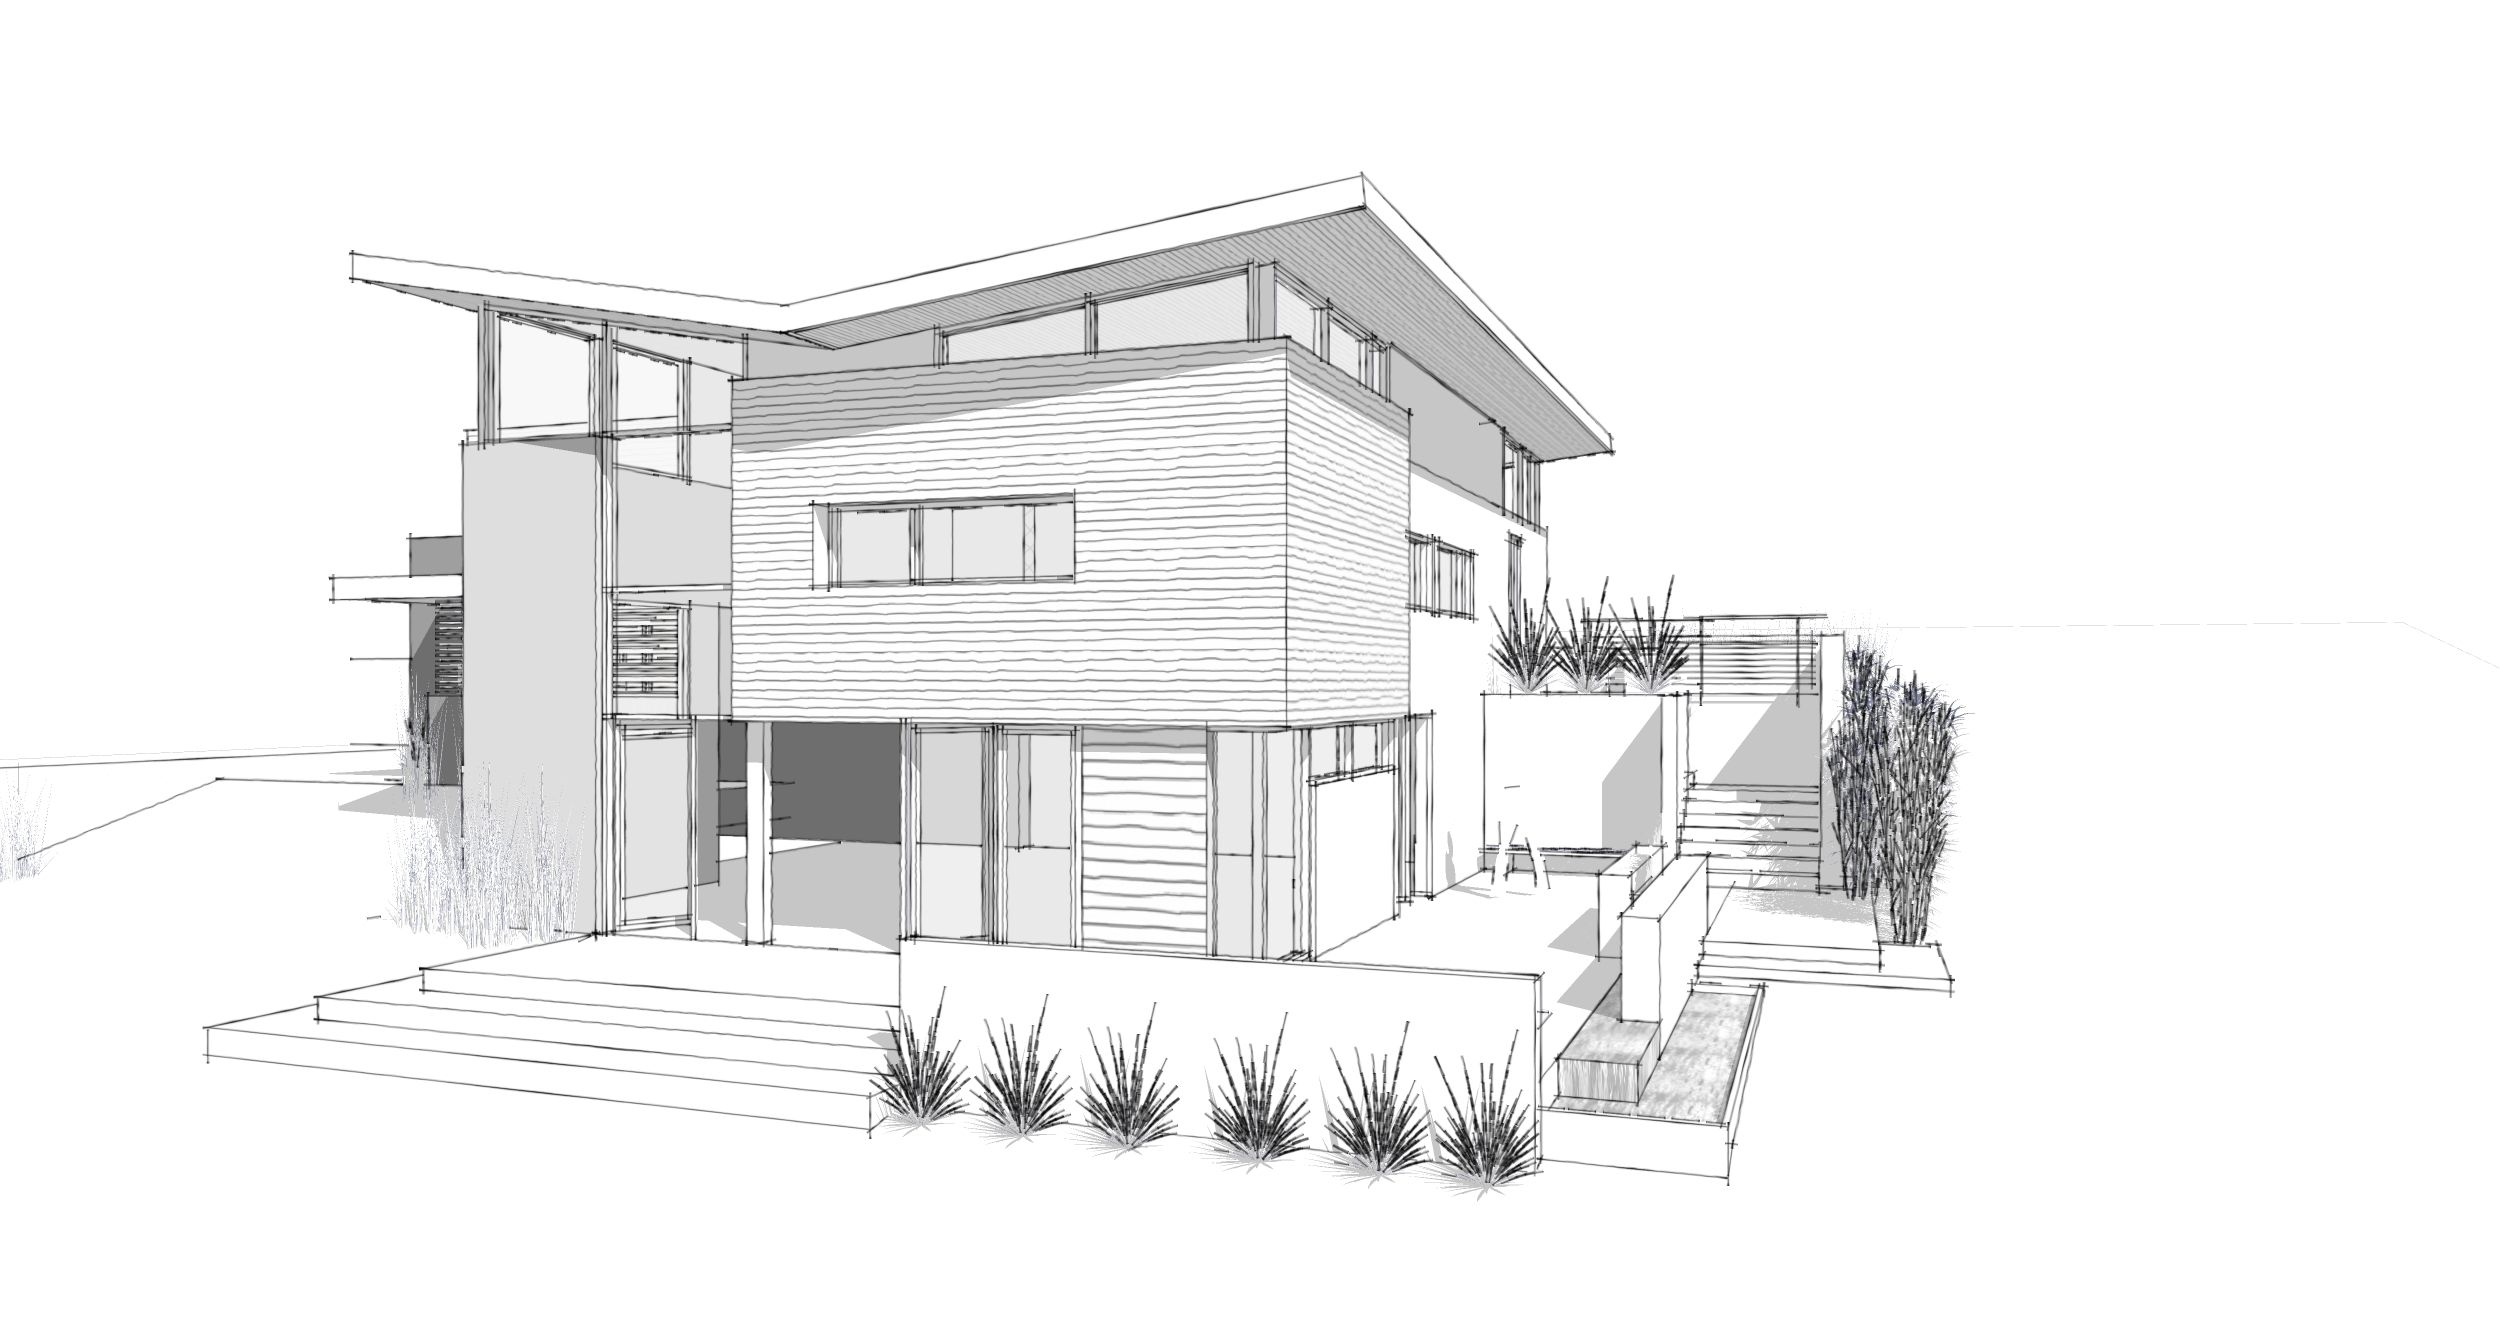 Modern home architecture sketches design ideas 13435 for Drafting house plans